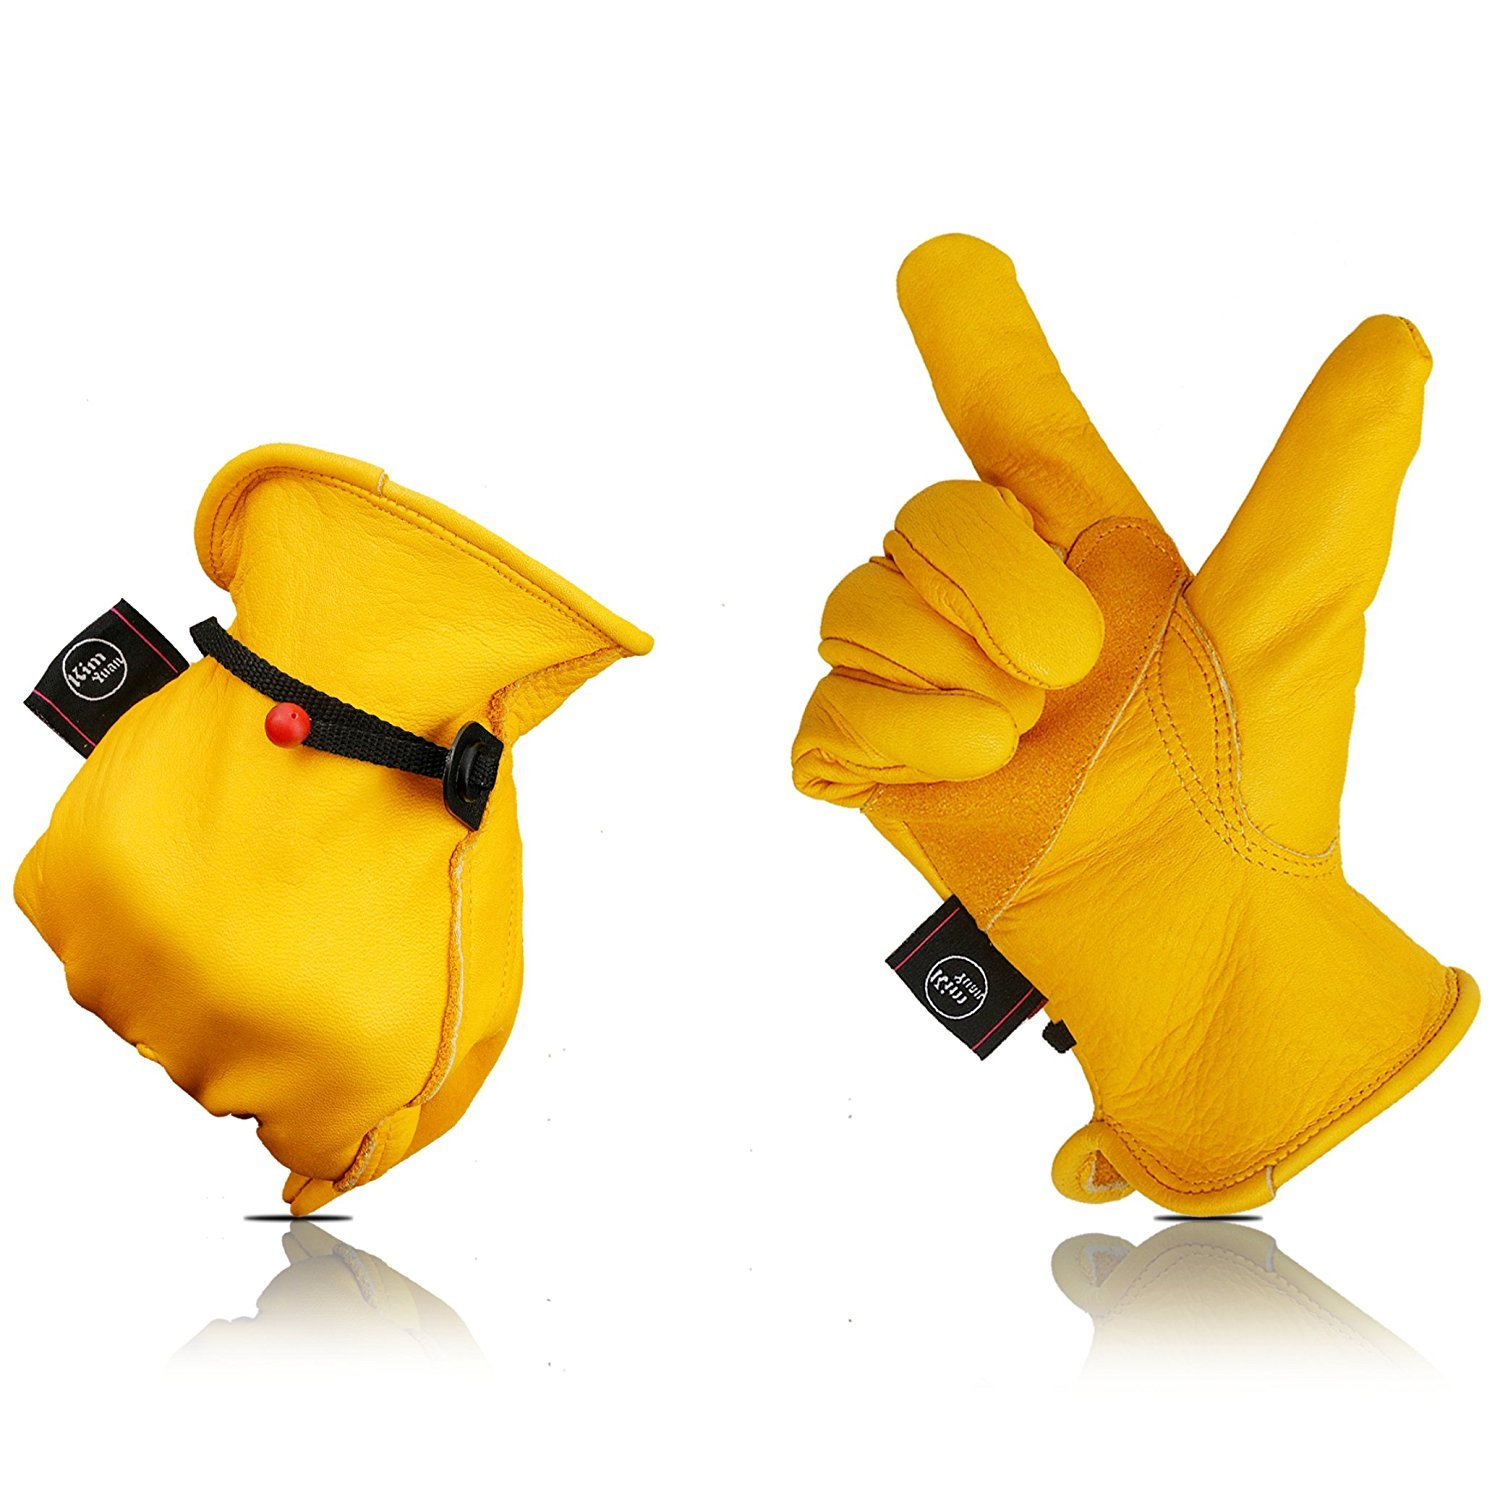 Kim Yuan Leather Work Gloves For Yard Work With Adjustable Wrist F Gardening